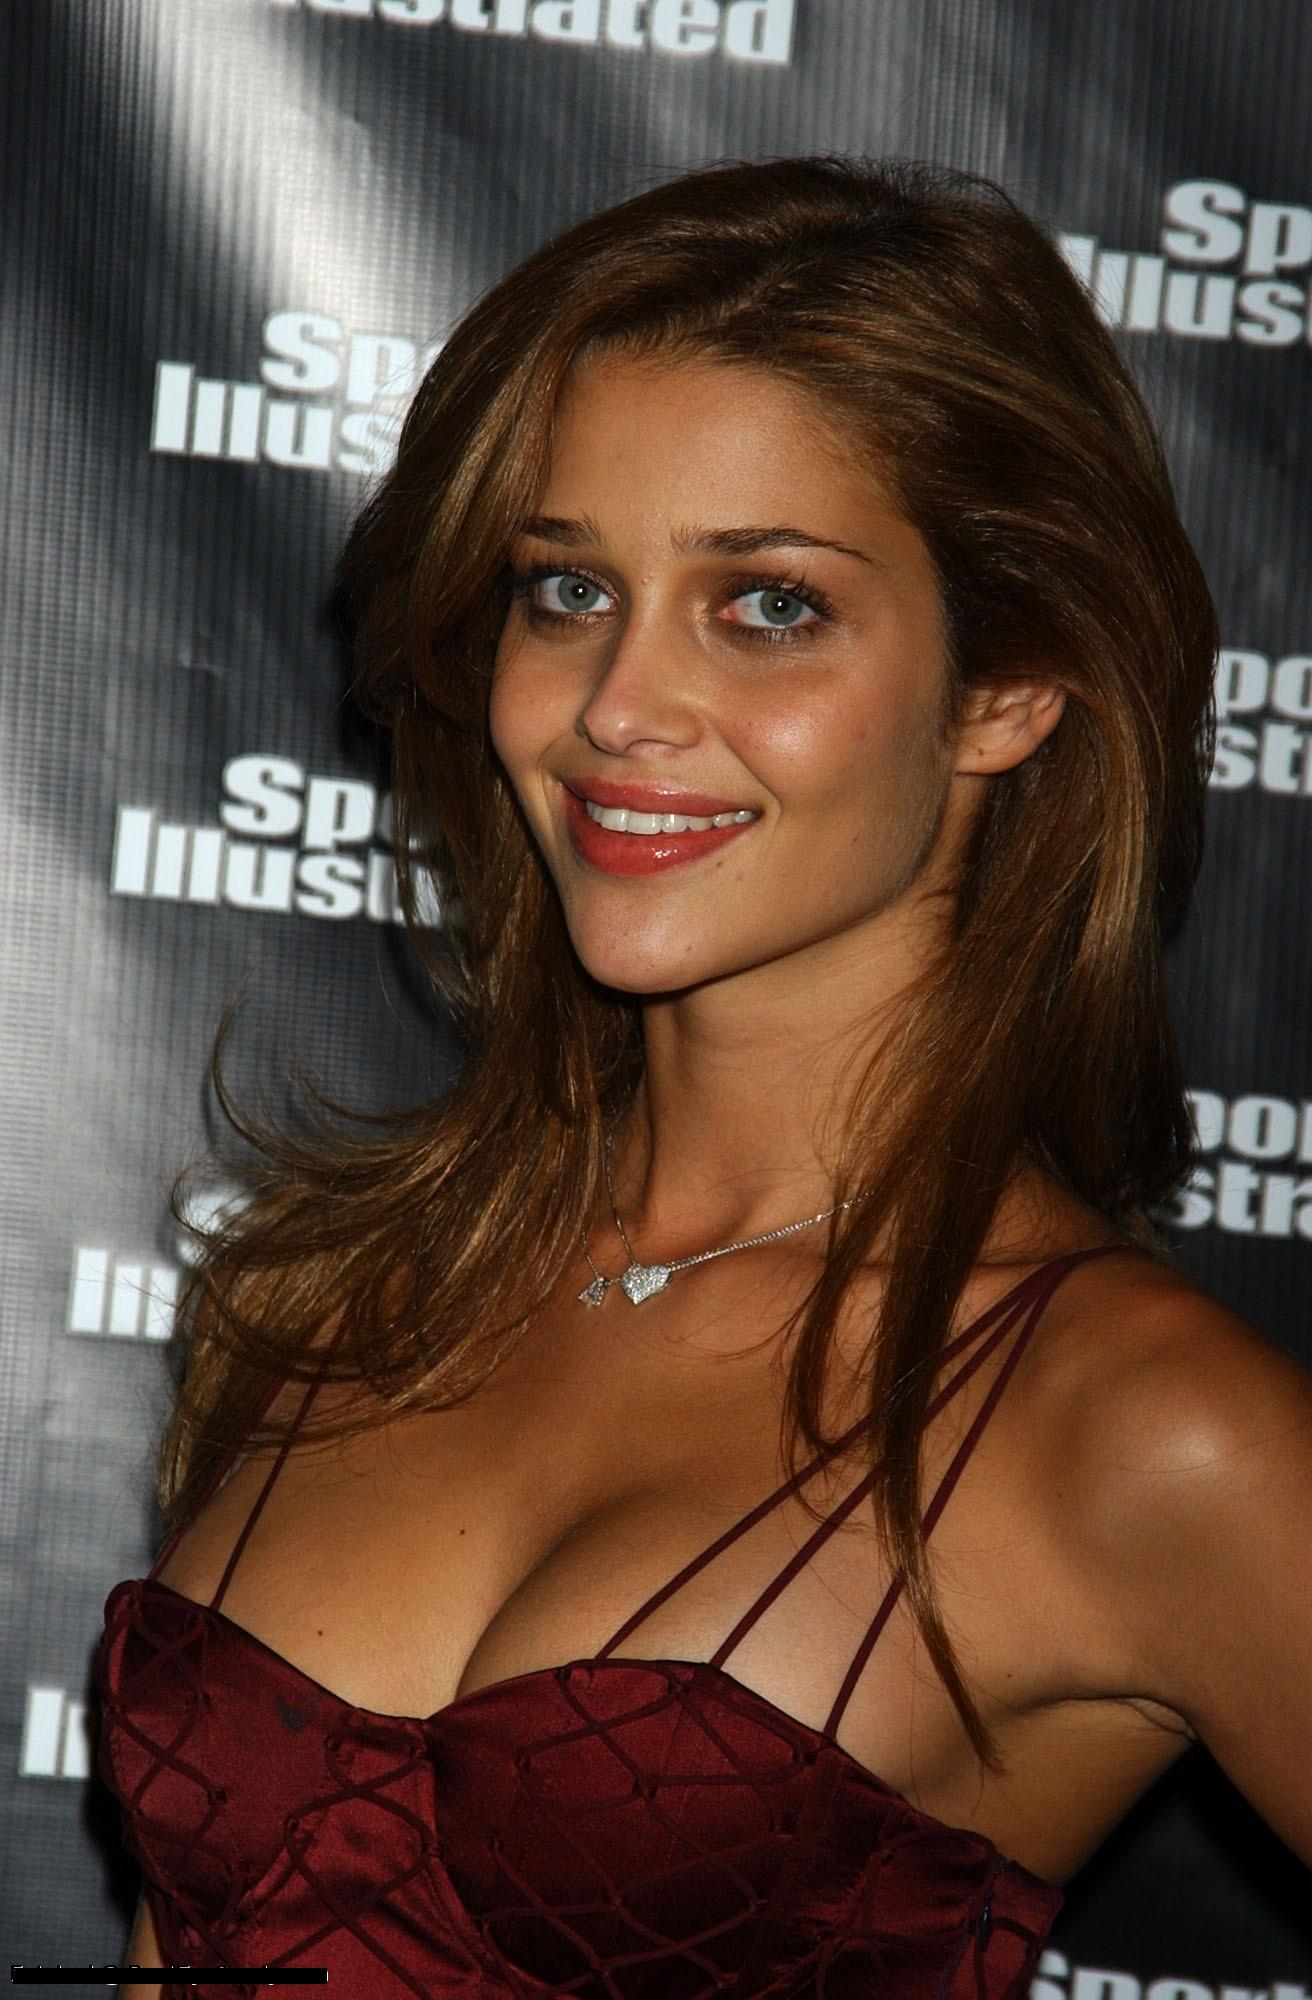 Ana Beatriz Barros Brazil nudes (23 photo), Topless, Leaked, Feet, cleavage 2020